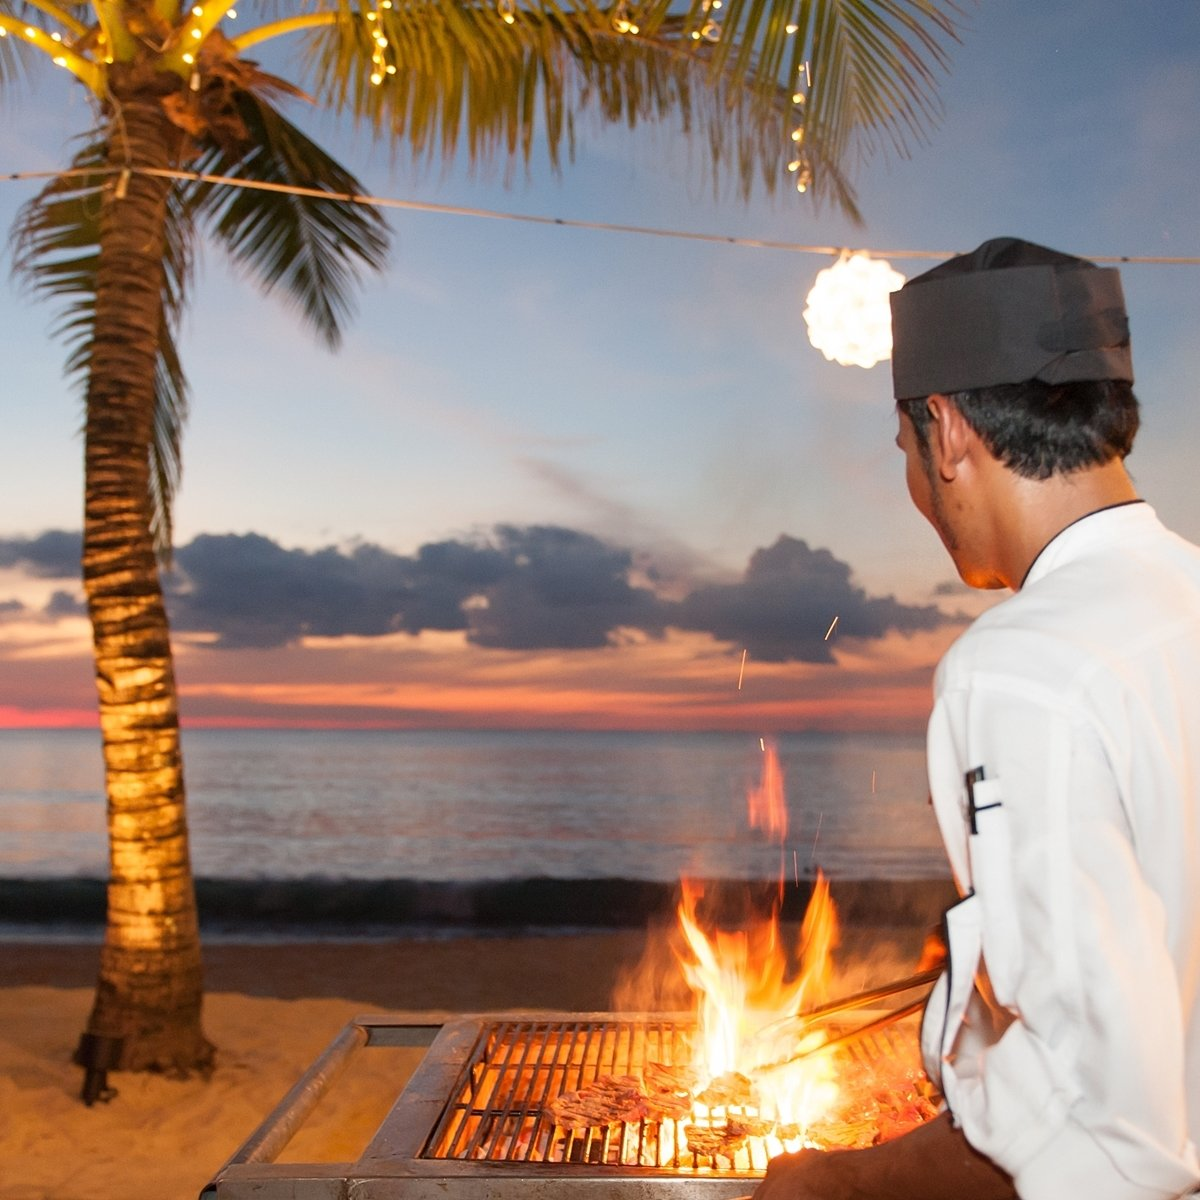 Enjoy our charcoal grill beach BBQ on every Friday & Sunday at Casuarina Beach restaurant.  Come early for Happy hour drinks. ______________________________  The Sizzling Night THB 1,399++ per person (buffet only) Contact: 076-362999 ext 7309  View Menus:: https://t.co/ogLgoKzLPA https://t.co/z0tvBsLupV